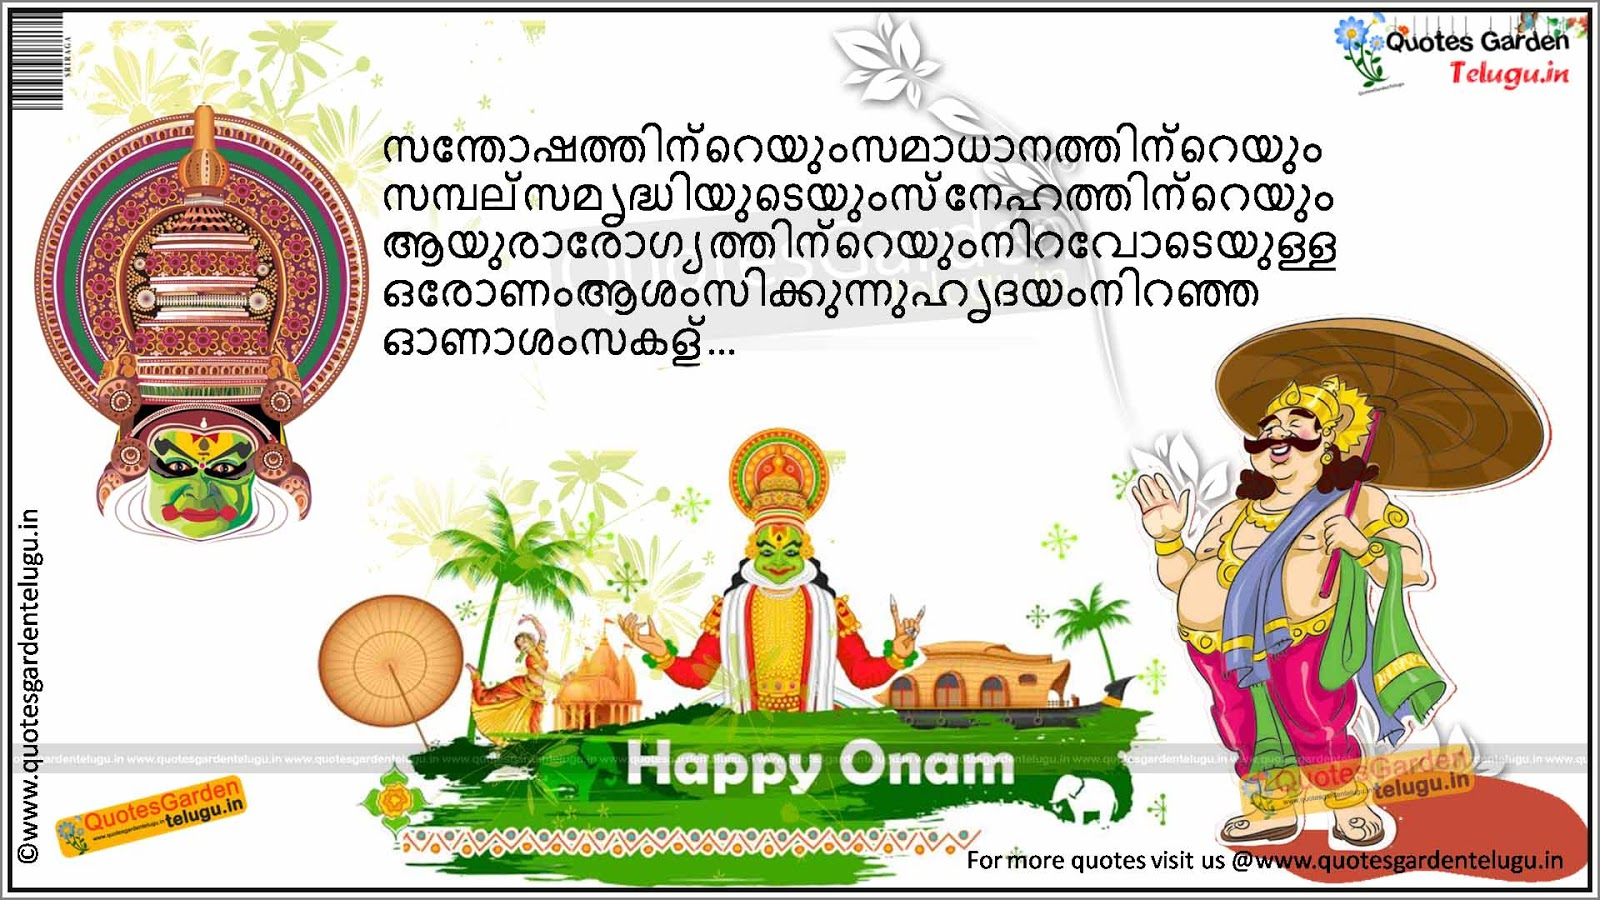 malayalam essay about onam Onam is one of the most significant harvest festivals of kerala and is an attraction for thousands of onam is celebrated in the beginning of the malayalam.